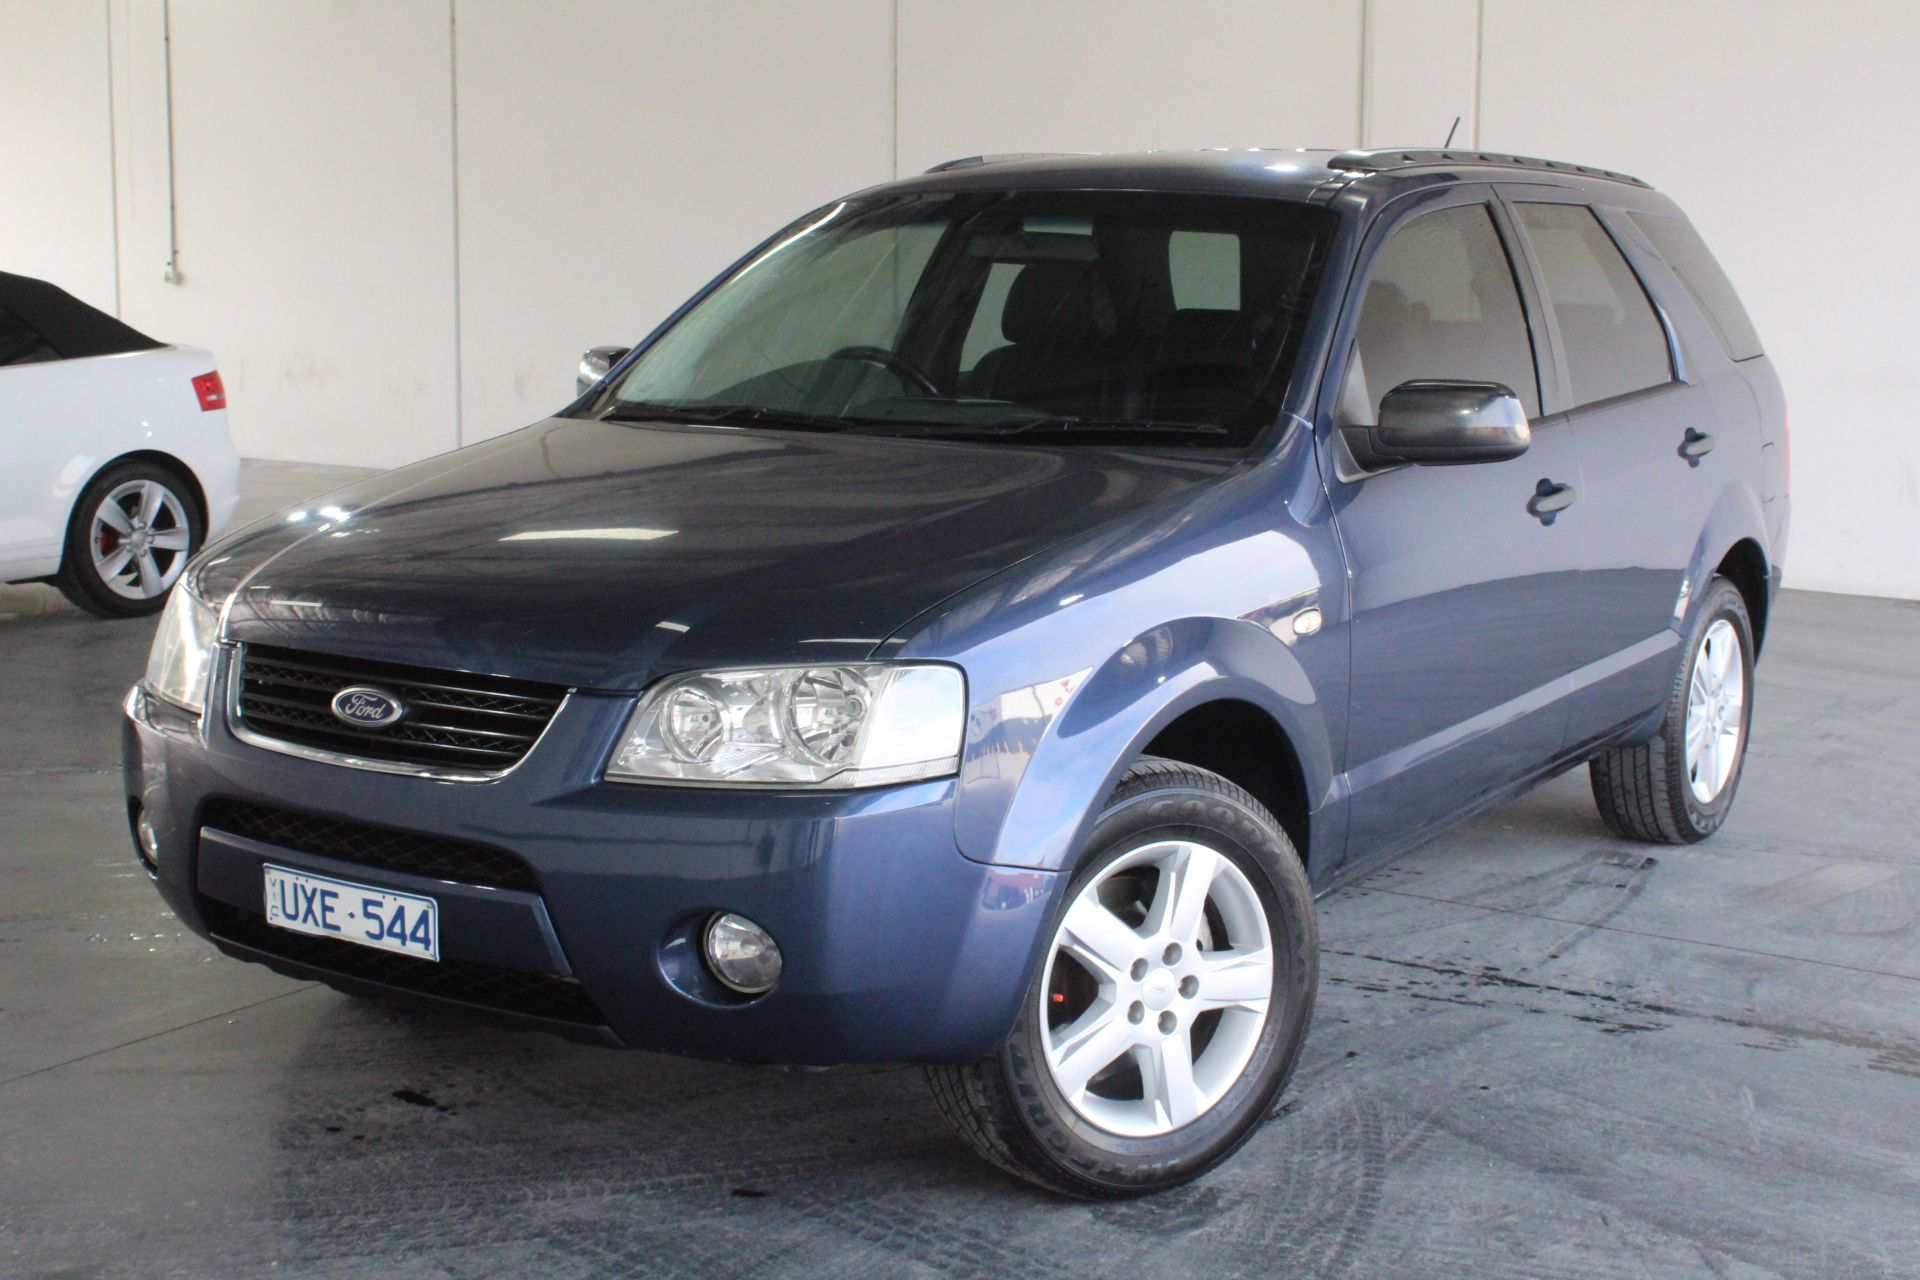 2007 Ford Territory TS (RWD) SY Automatic 7 Seats Wagon